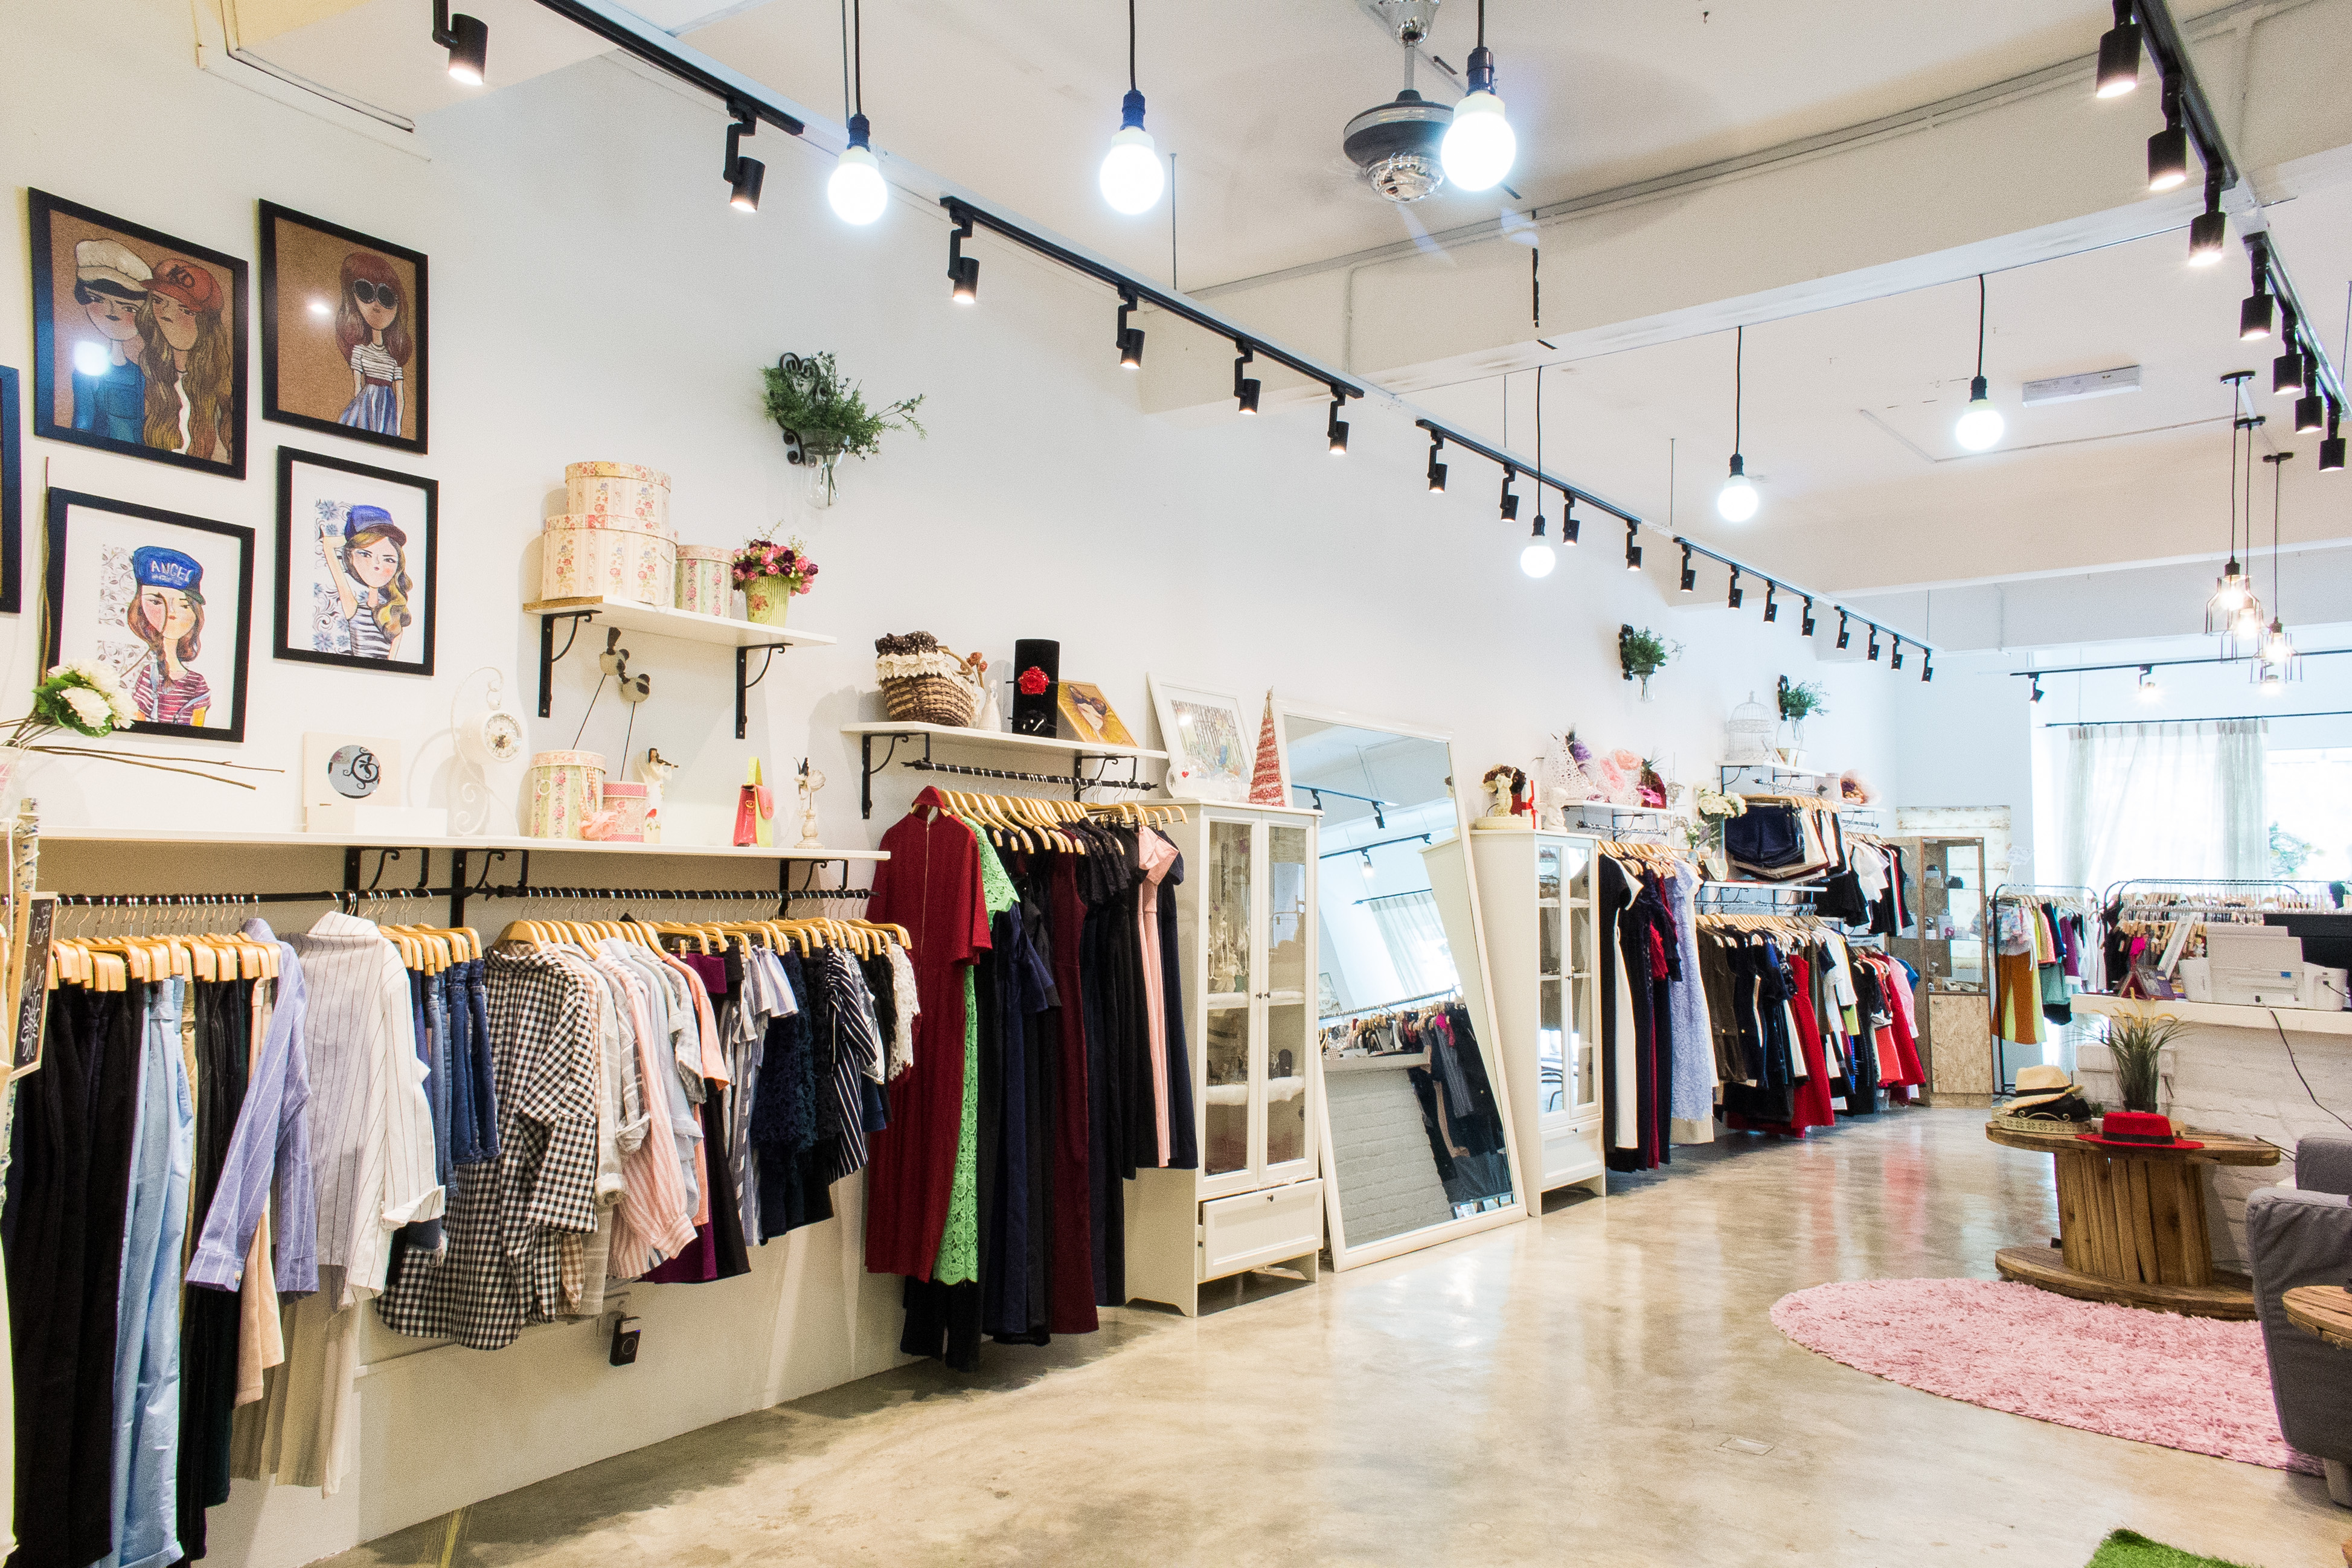 Boutique  Best Come Check Out Our Local Bridal Boutique In Downtown     gallery of the leading fashion boutique that stocks pretty japanese u  korean style clothing and accessories at reasonable price with boutique